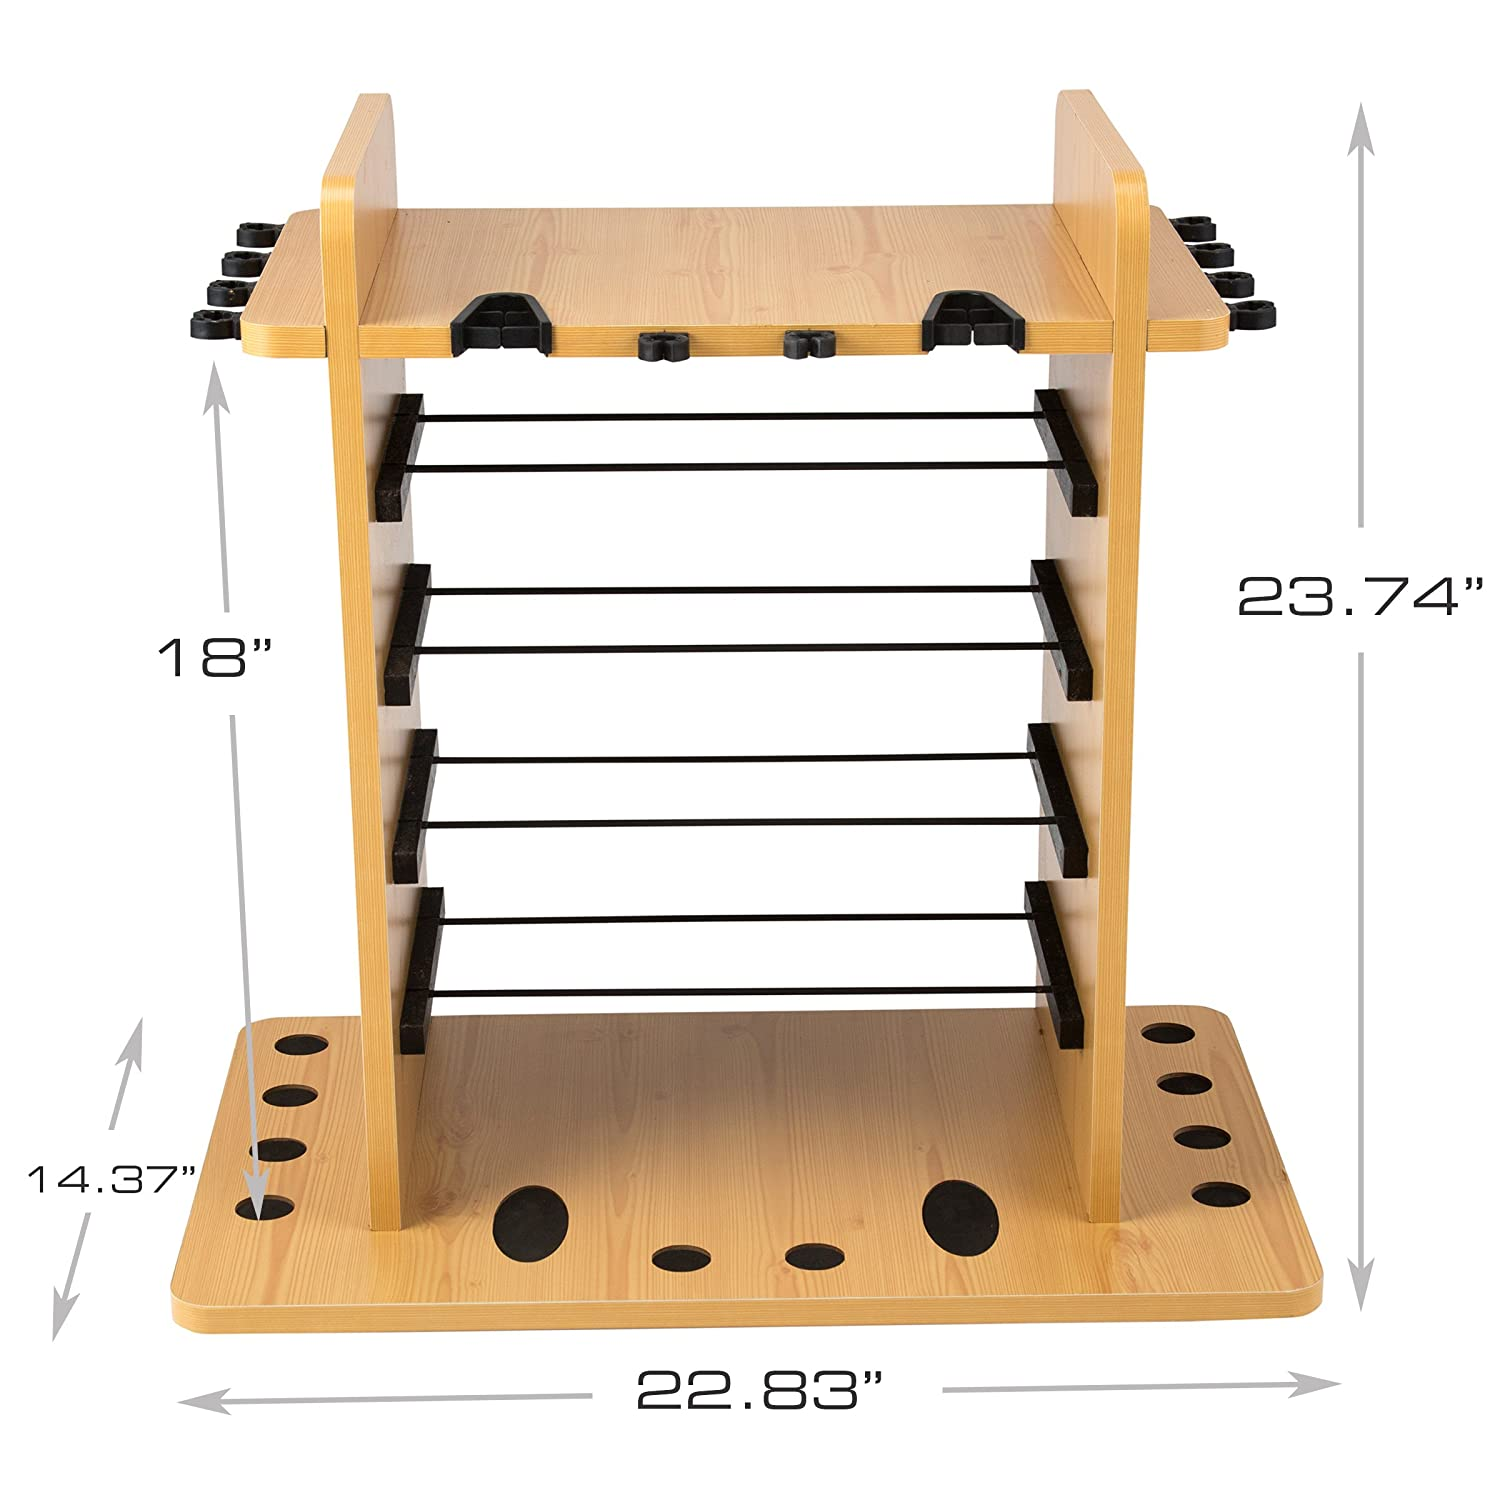 Rush Creek Creations 14 Fishing Rod Rack with 4 Utility Box Storage Capacity Dual Rod Clips – Features a Sleek Design Wire Racking System